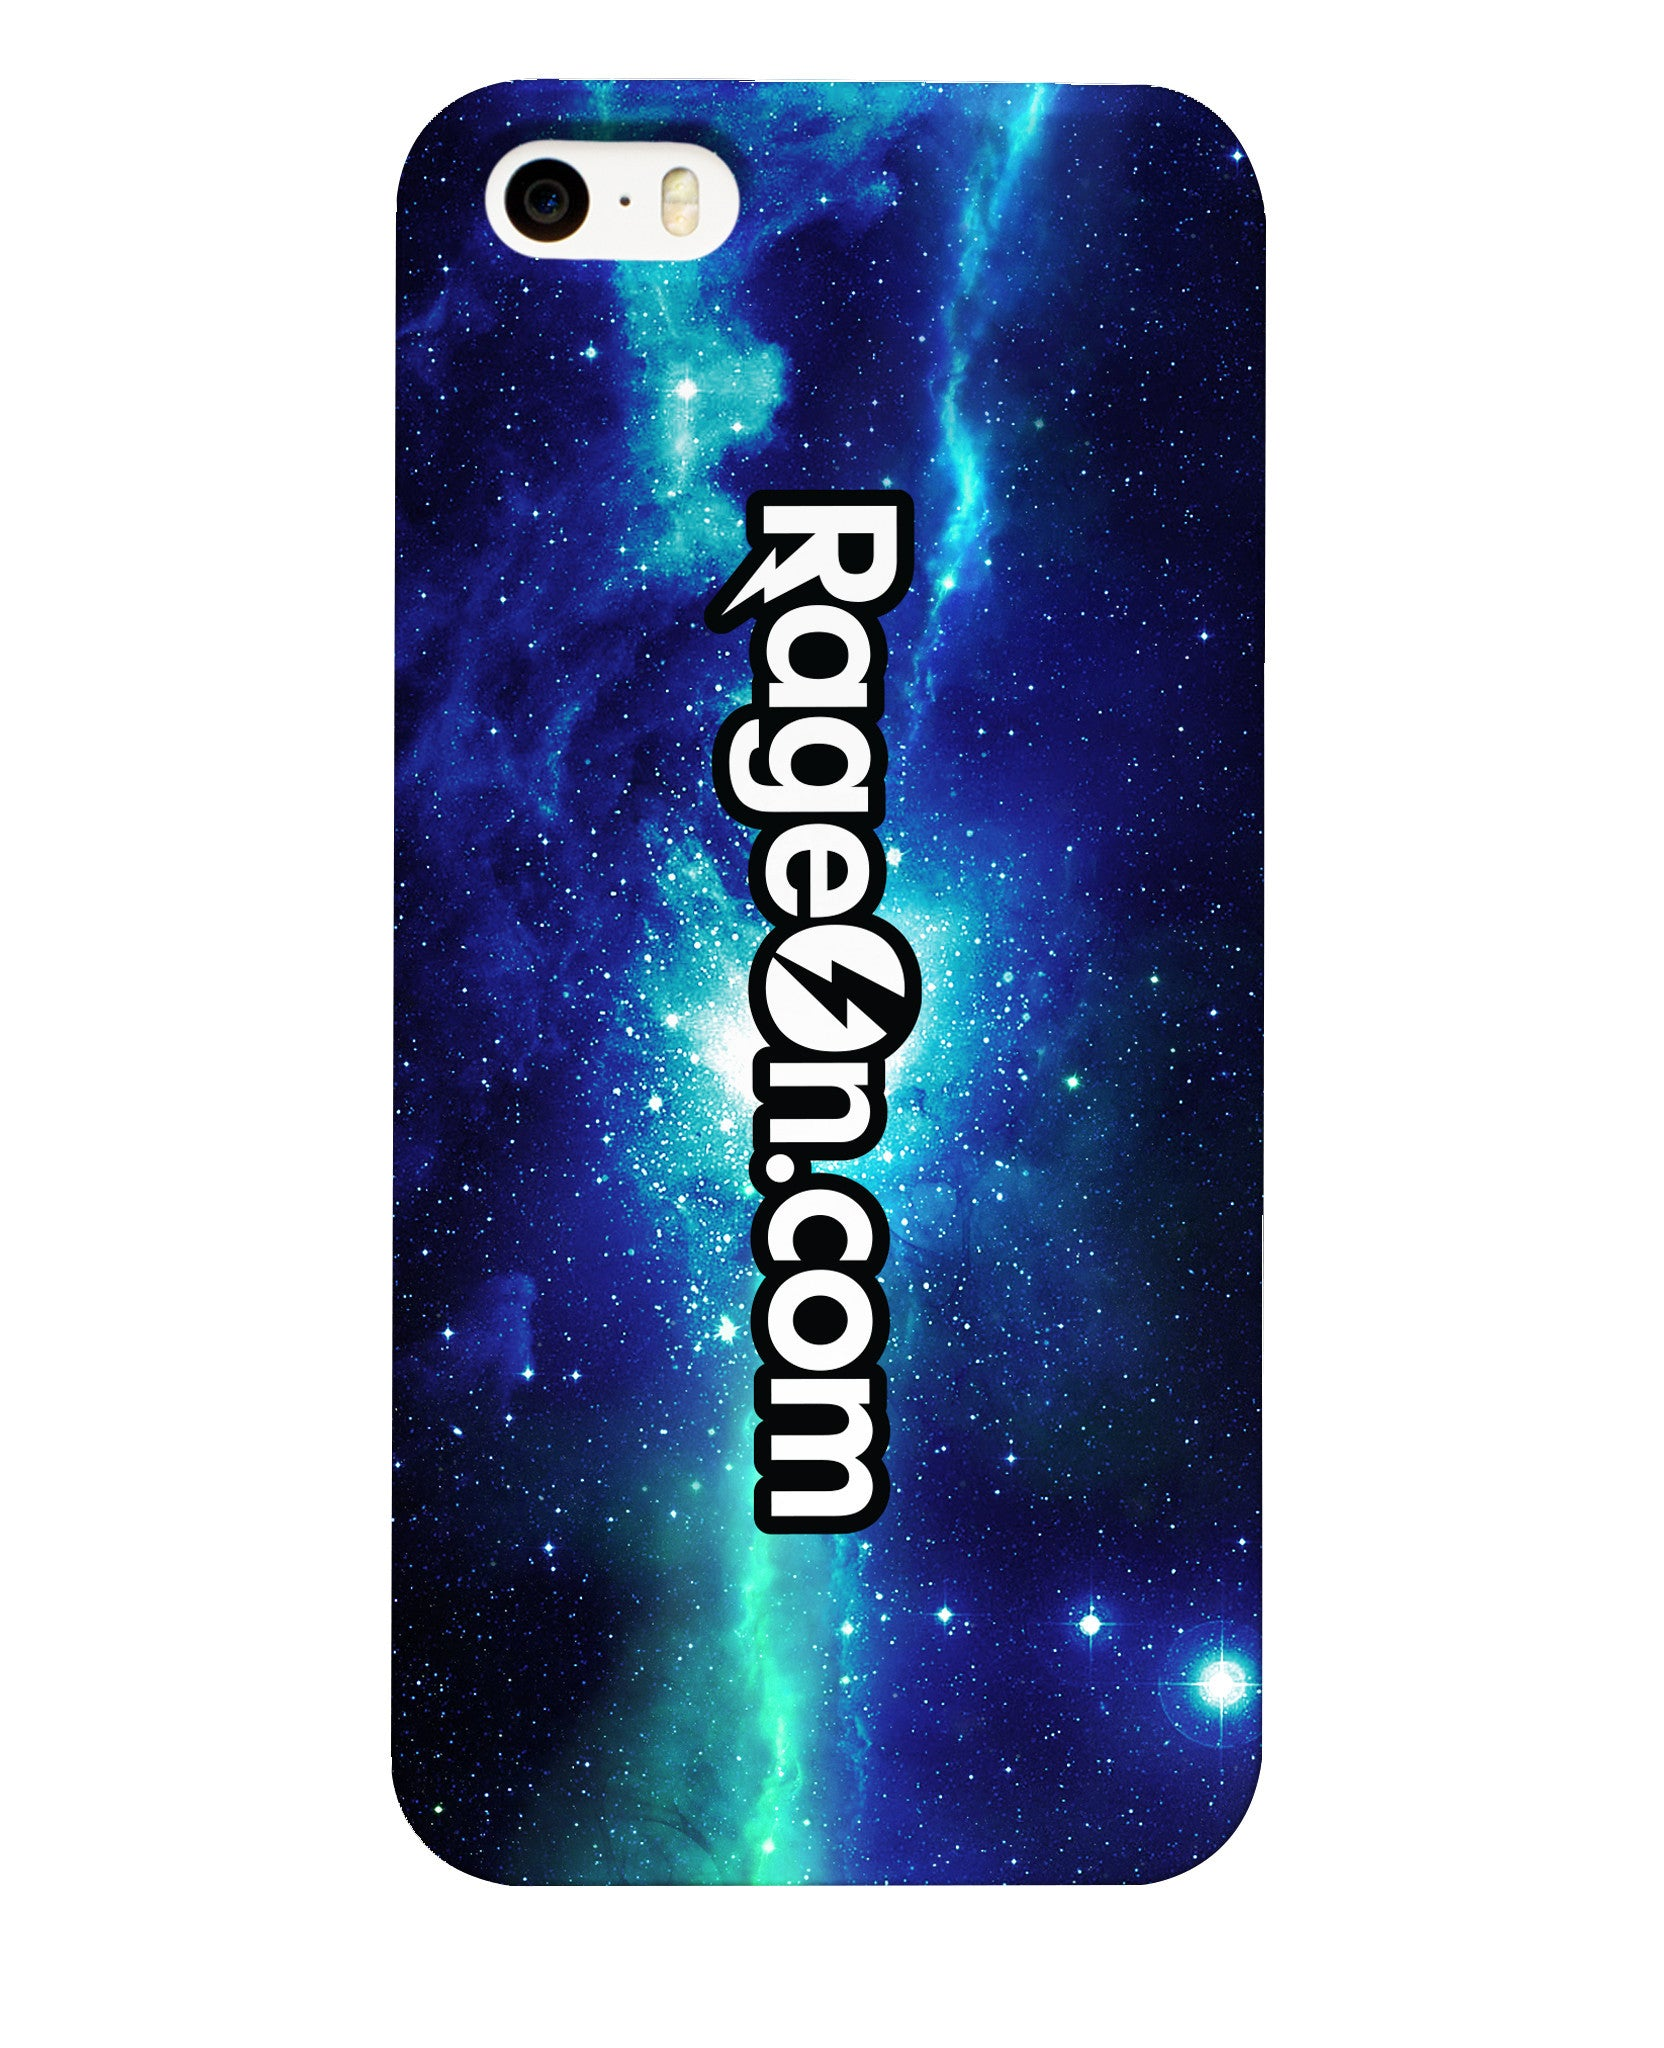 RageOn.com Phone Case